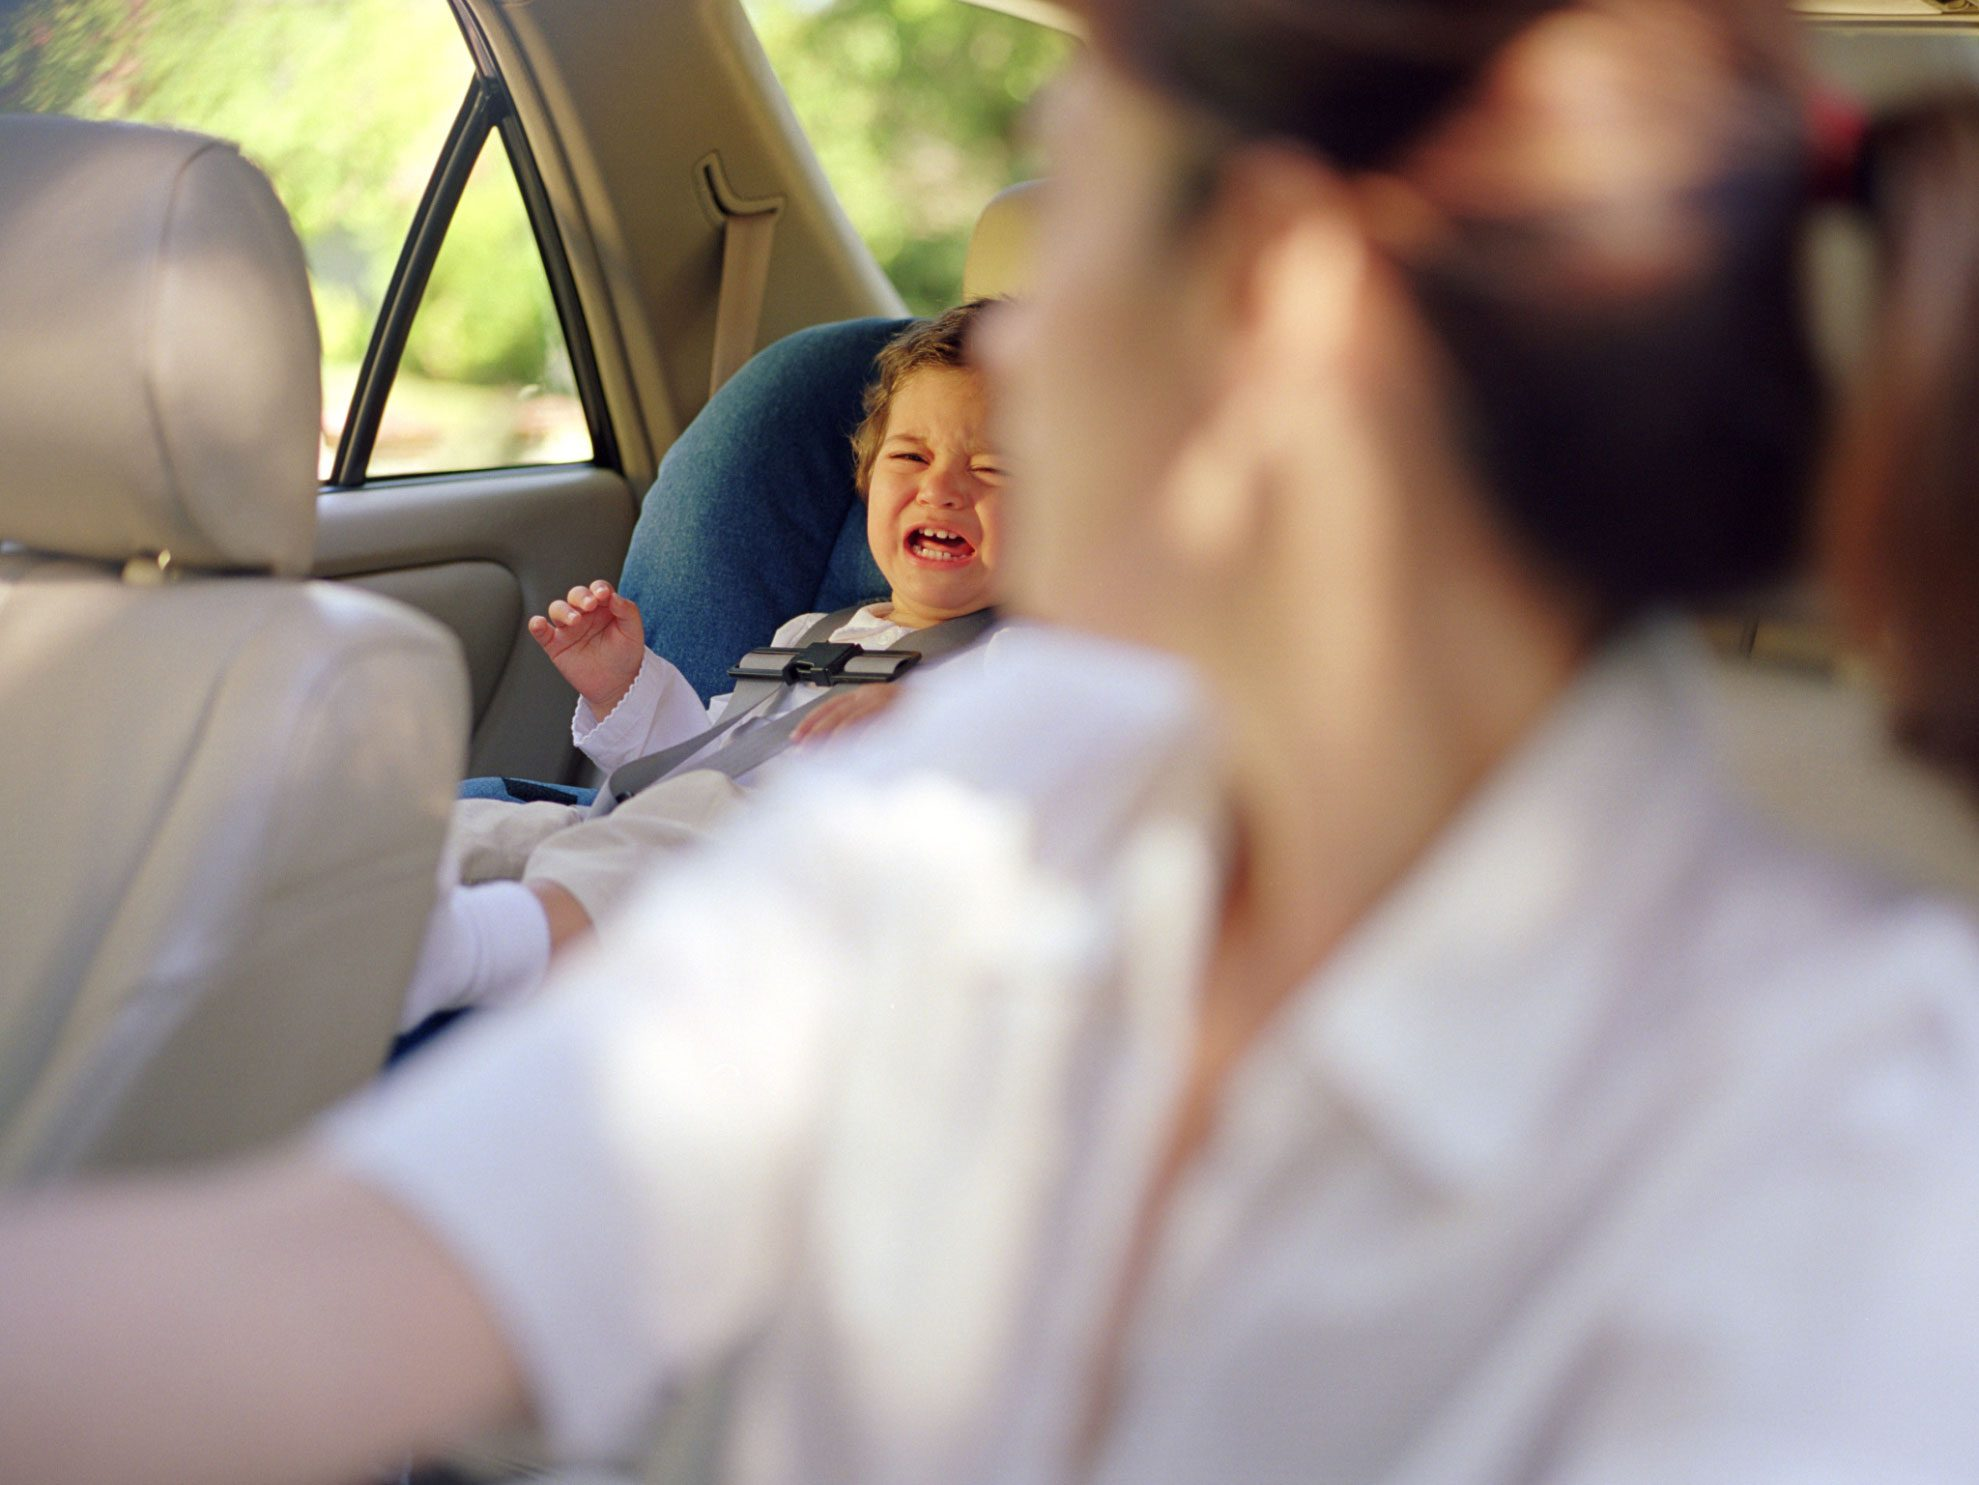 Reduce Distractions and Focus on the Road